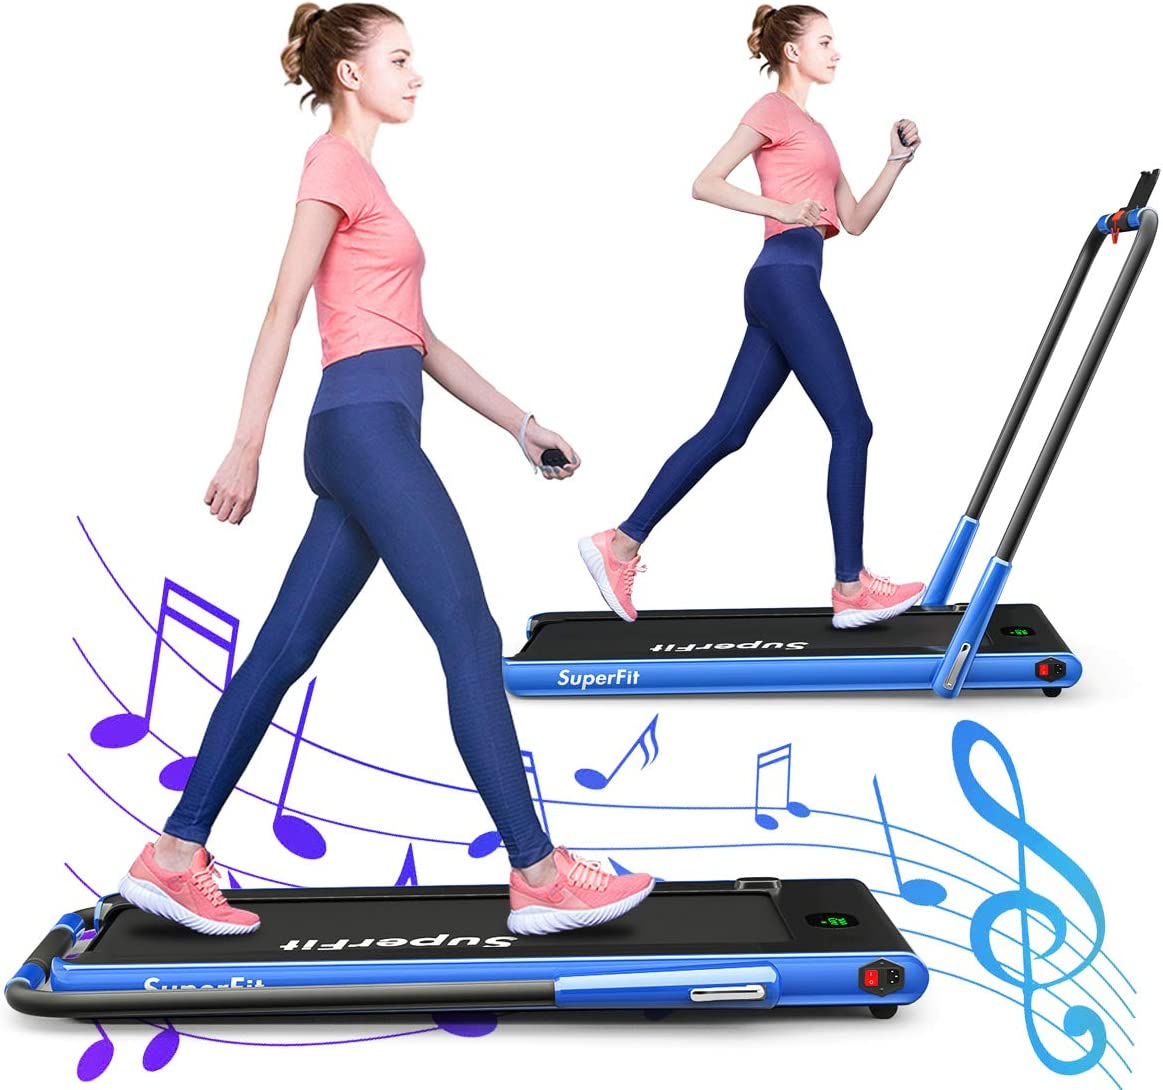 GYMAX Folding Treadmill, Electric Running Machine with Blue-Teeth LED Screen, Portable Under-Desk Walking Machine for Home, Office, Gym